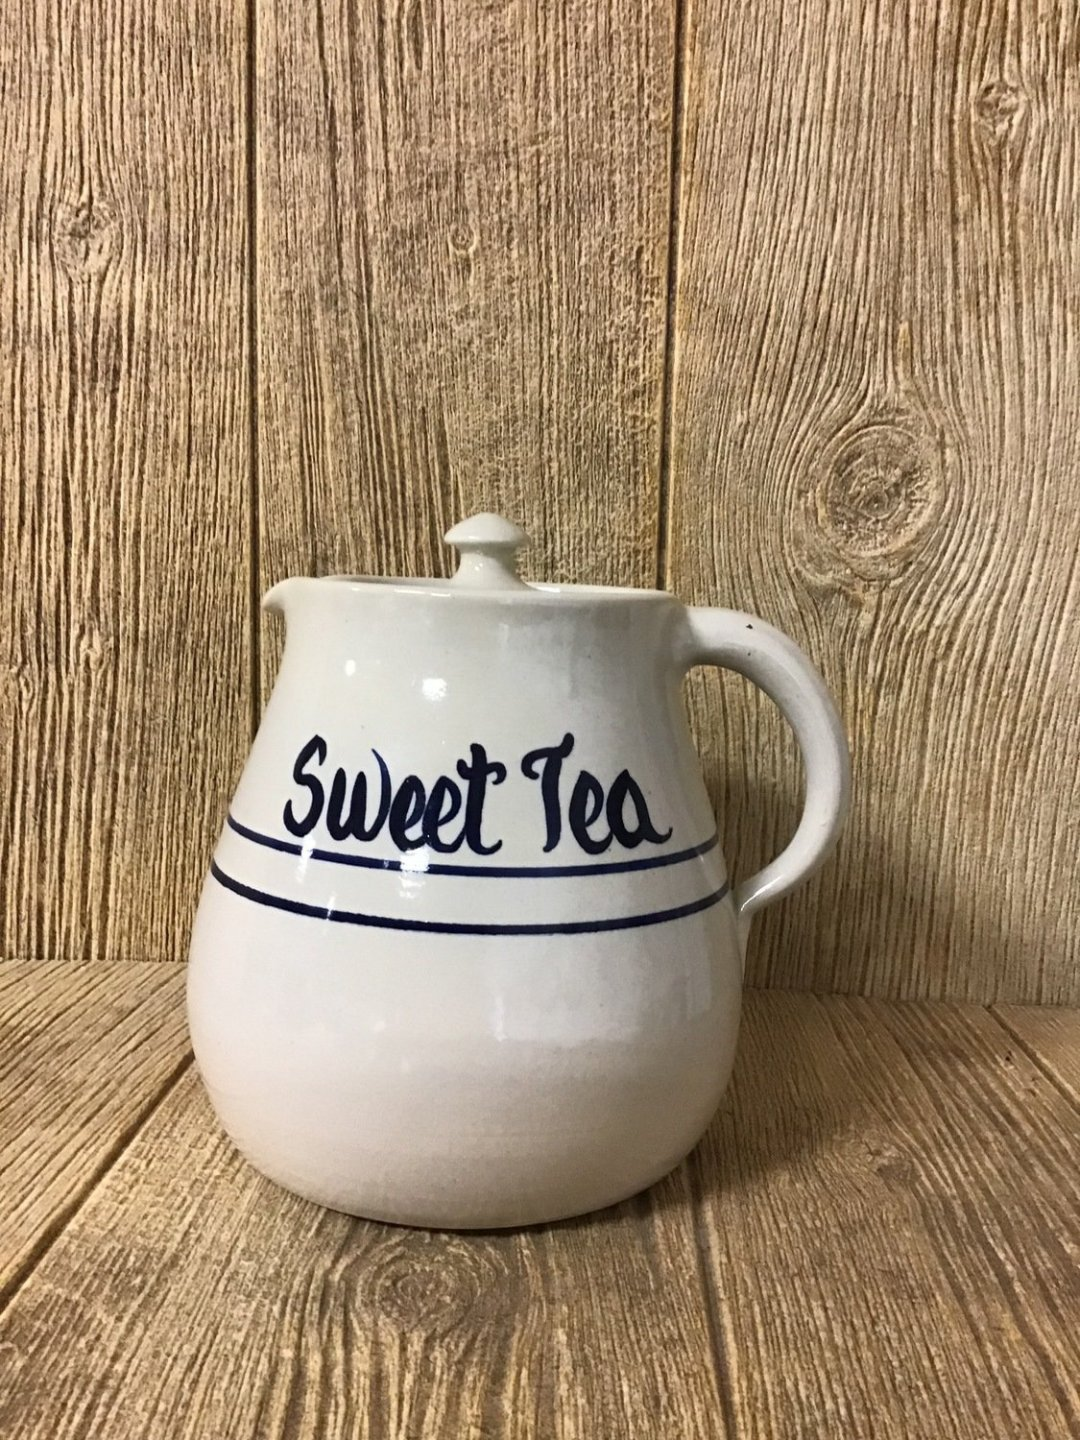 1 Gallon Sweet Tea Pitcher